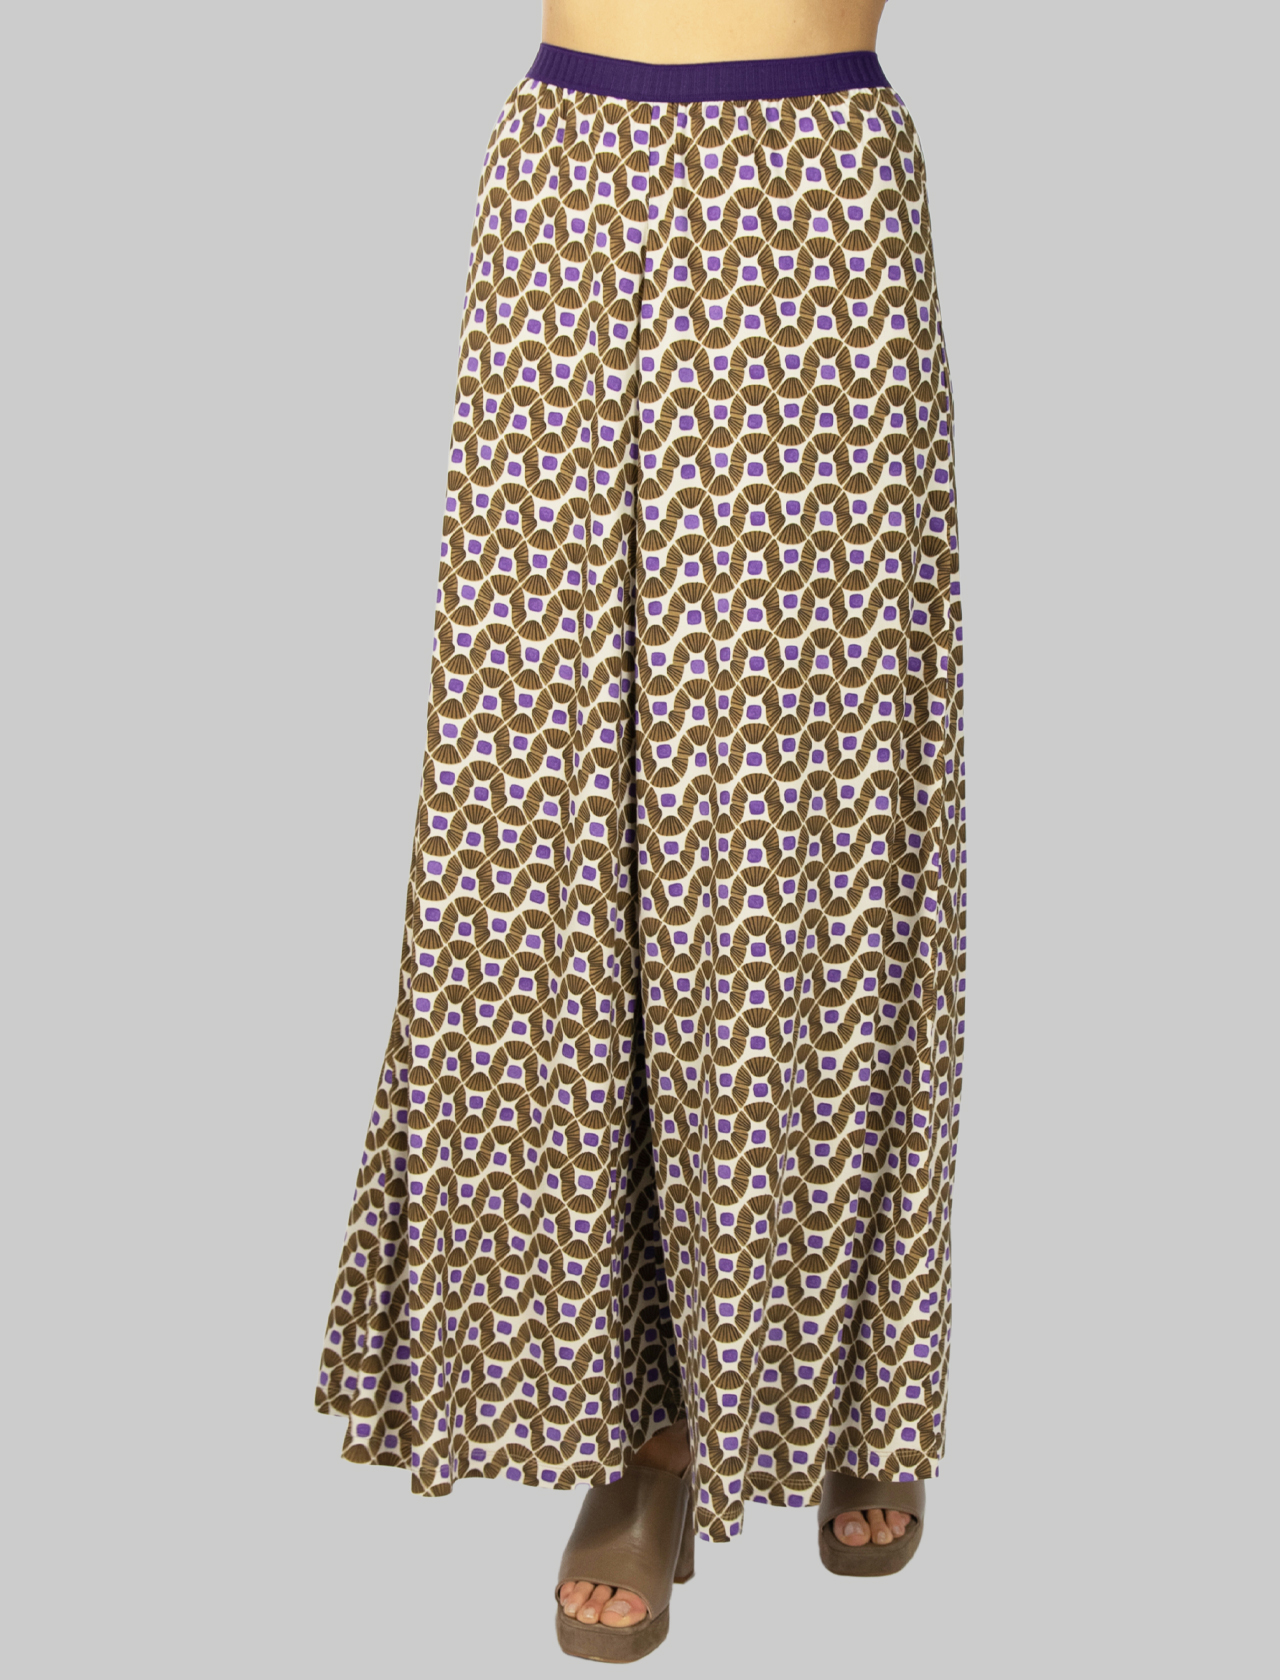 Women's Clothing Beige and Natural Patterned Happy Frame Jersey Trousers Maliparmi   Skirts and Pants   JH742270493B1104